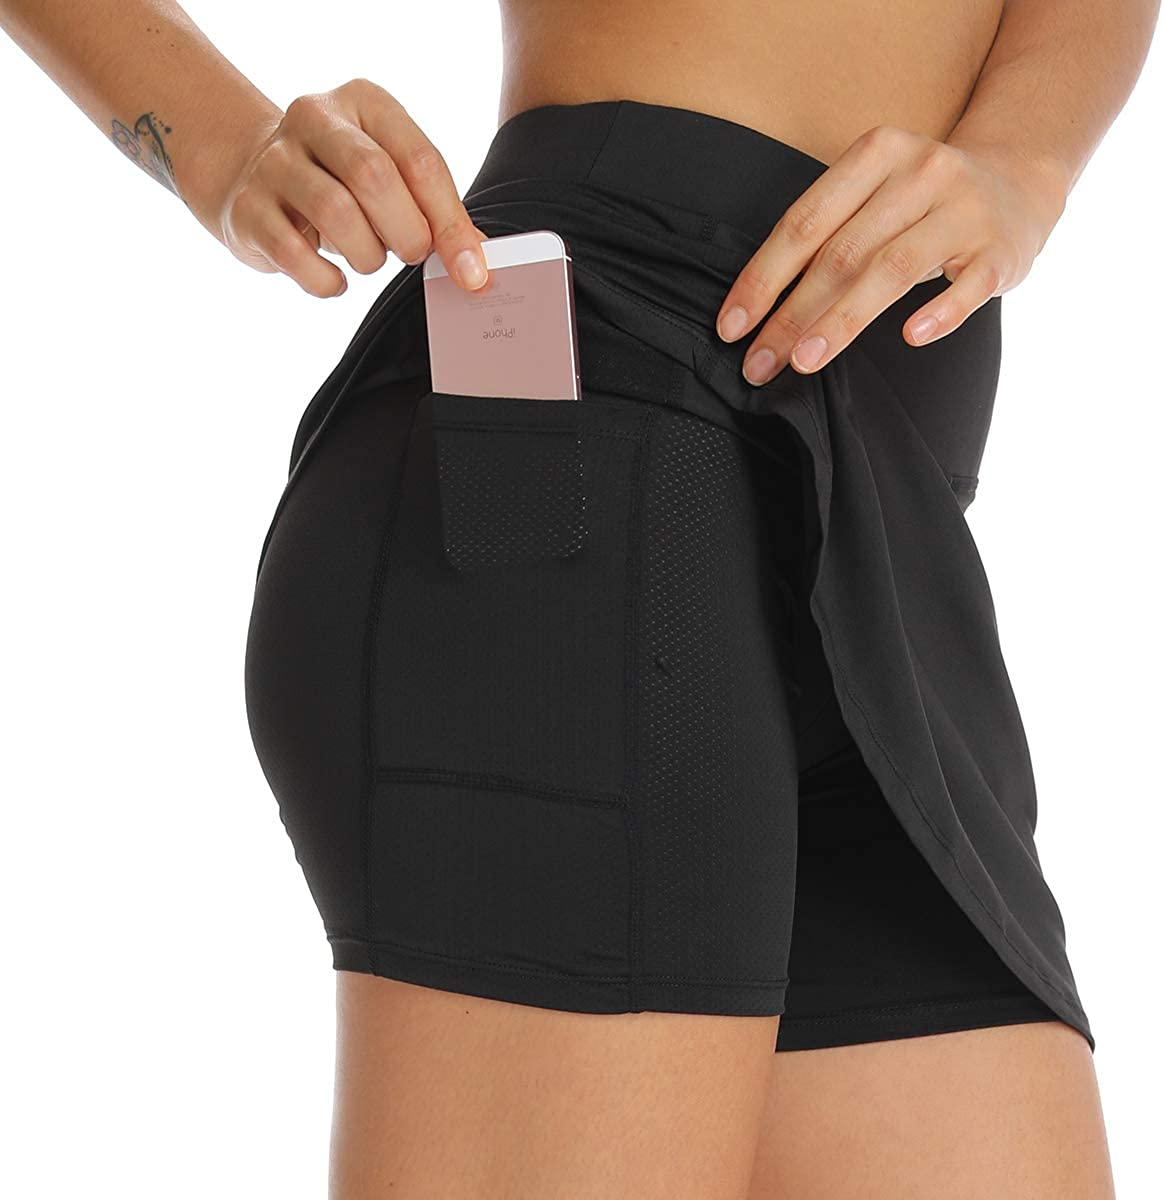 Ultrafun Women Athletic Tennis Skirts Stretchy Sports Golf Running Skirt Skort with Inner Shorts Pockets for Fitness Workout: Clothing